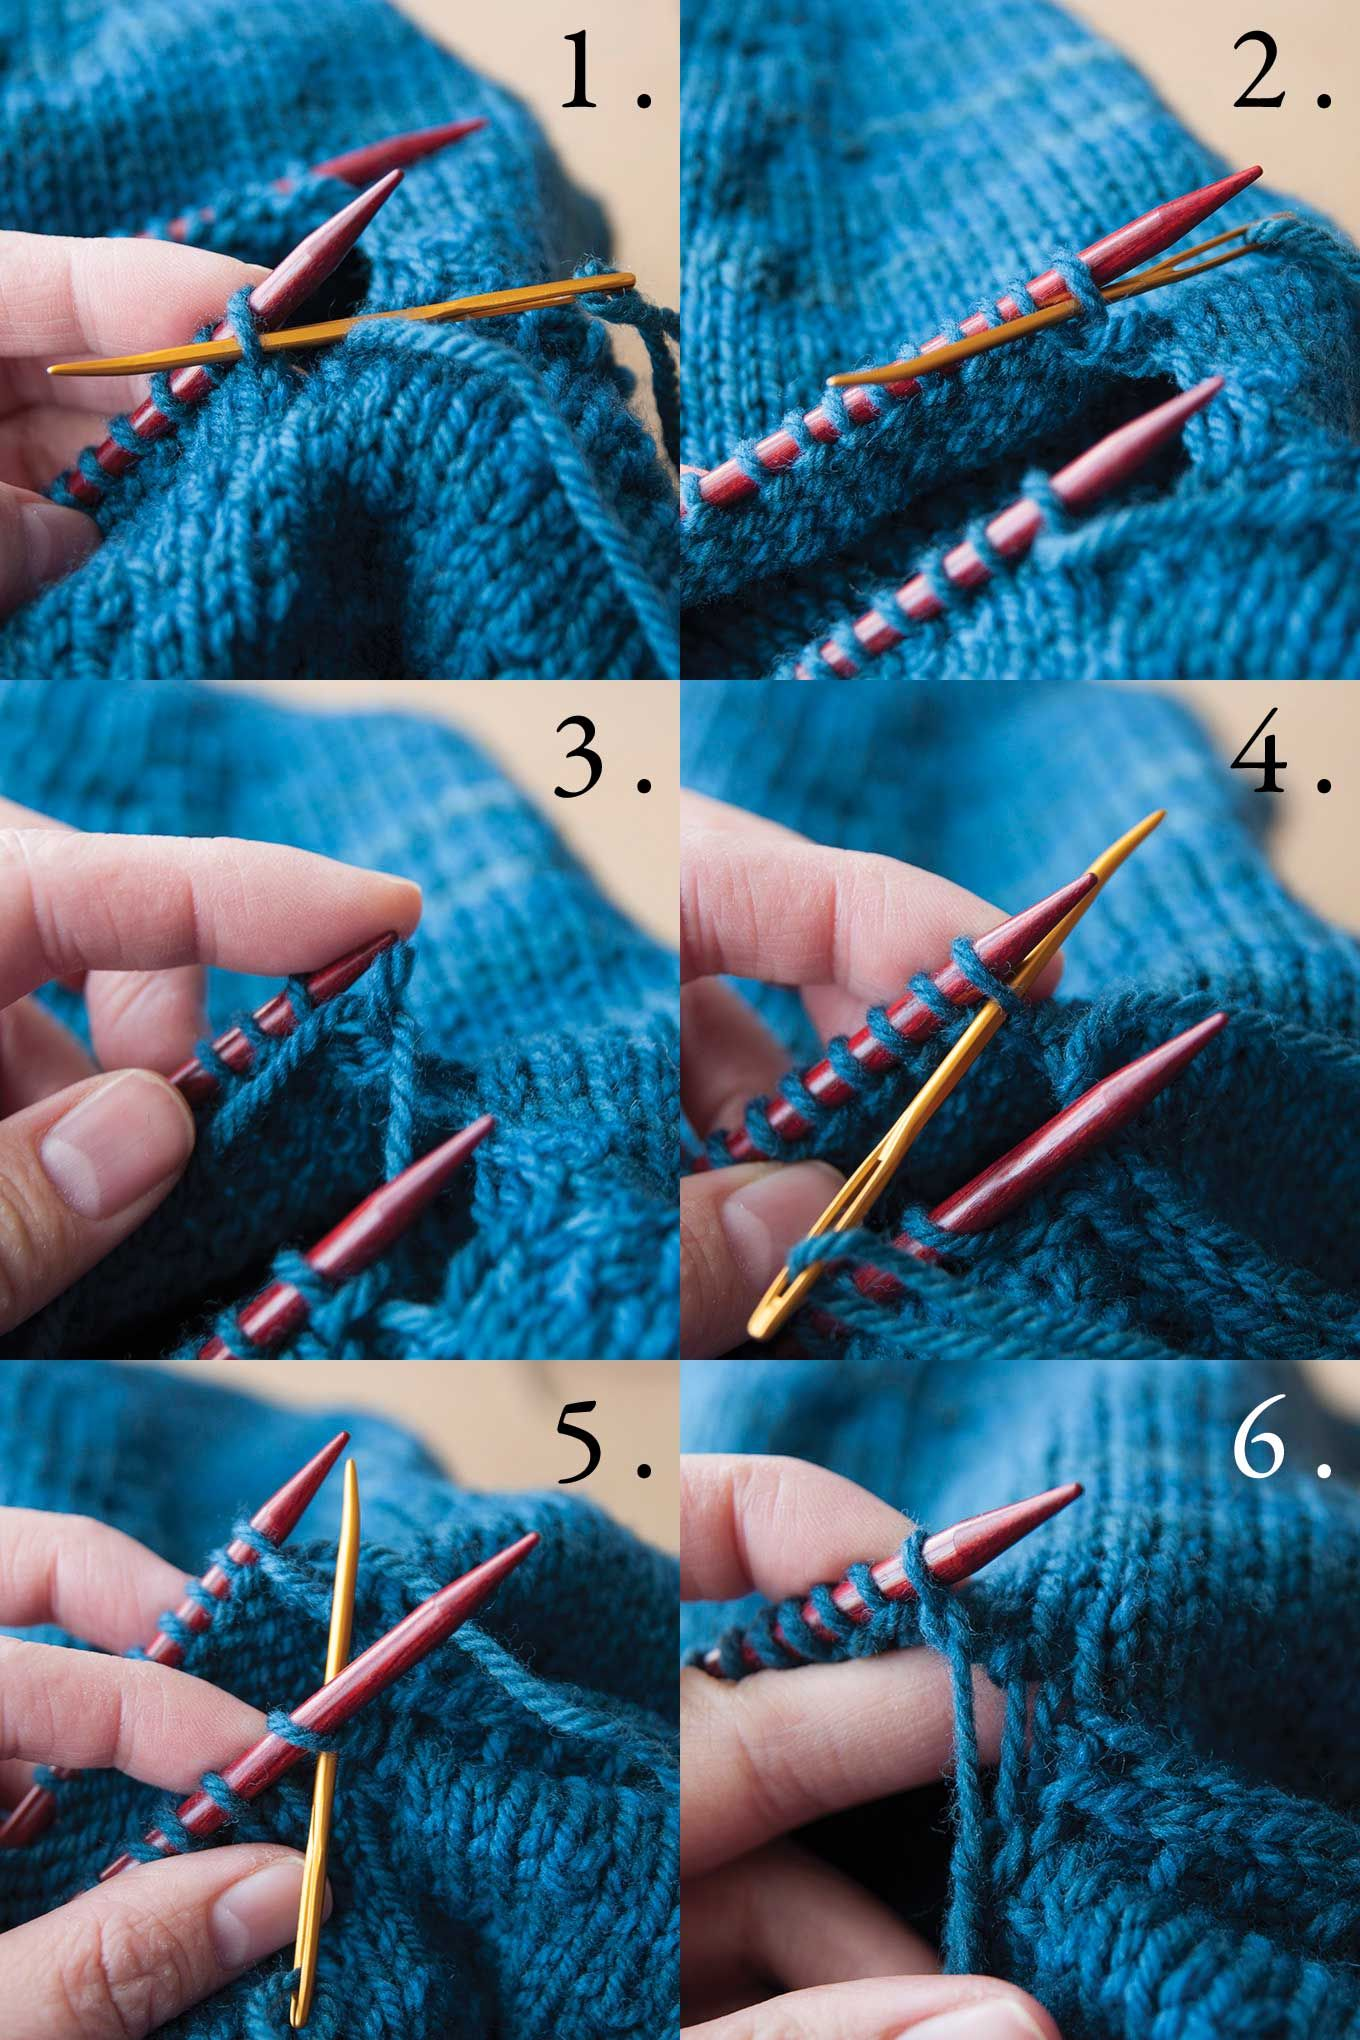 working Kitchener stitch to close armhole gaps | skillz | Pinterest ...